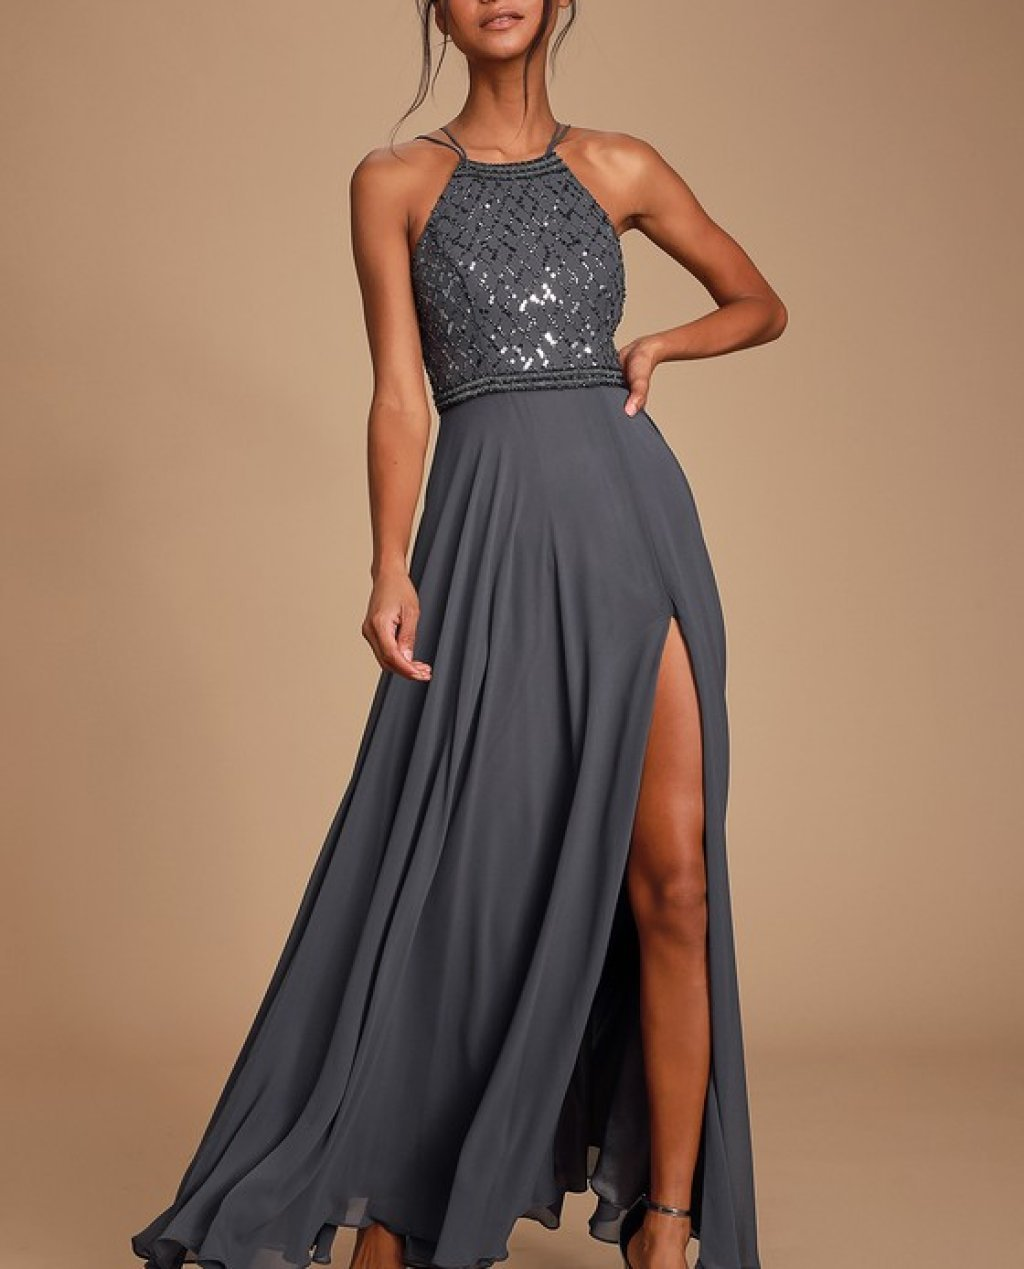 Forever in Love Charcoal Grey Sequin Sleeveless Maxi Dress